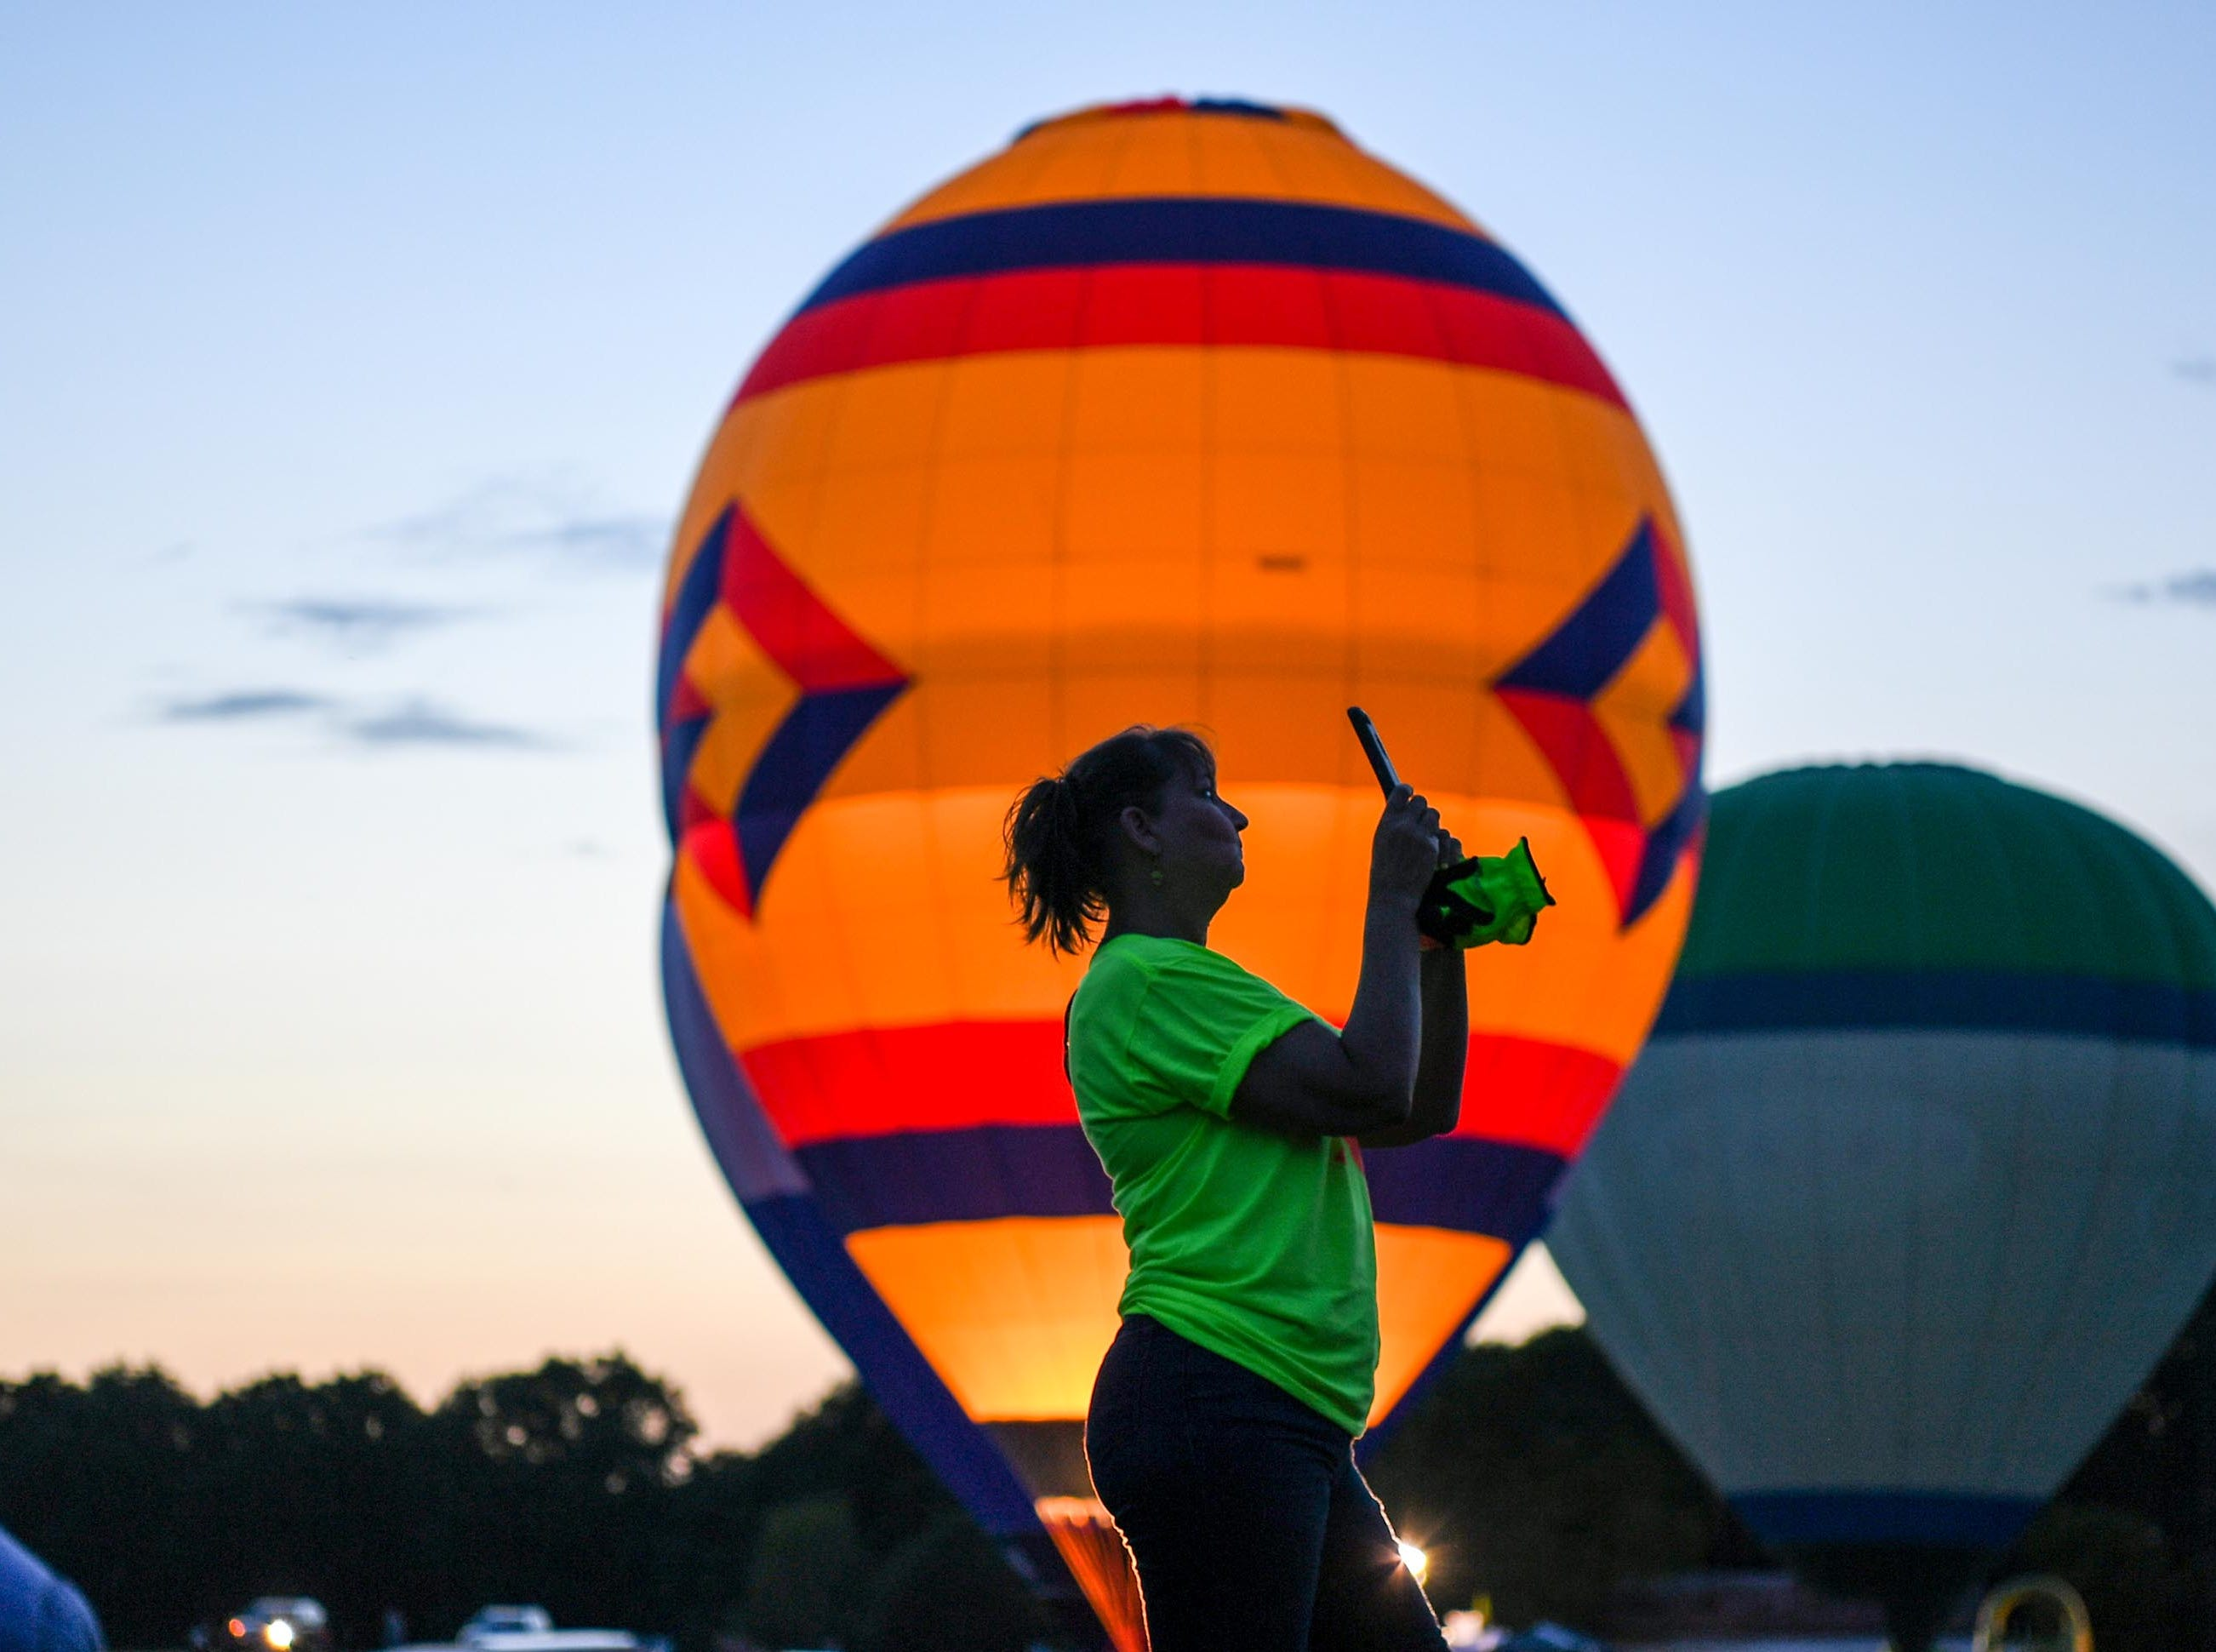 A woman takes a photo at the balloon glow at the Rocky River Plantation during the Cancer Association of Anderson Hot Air Balloon Affair in Anderson Friday.